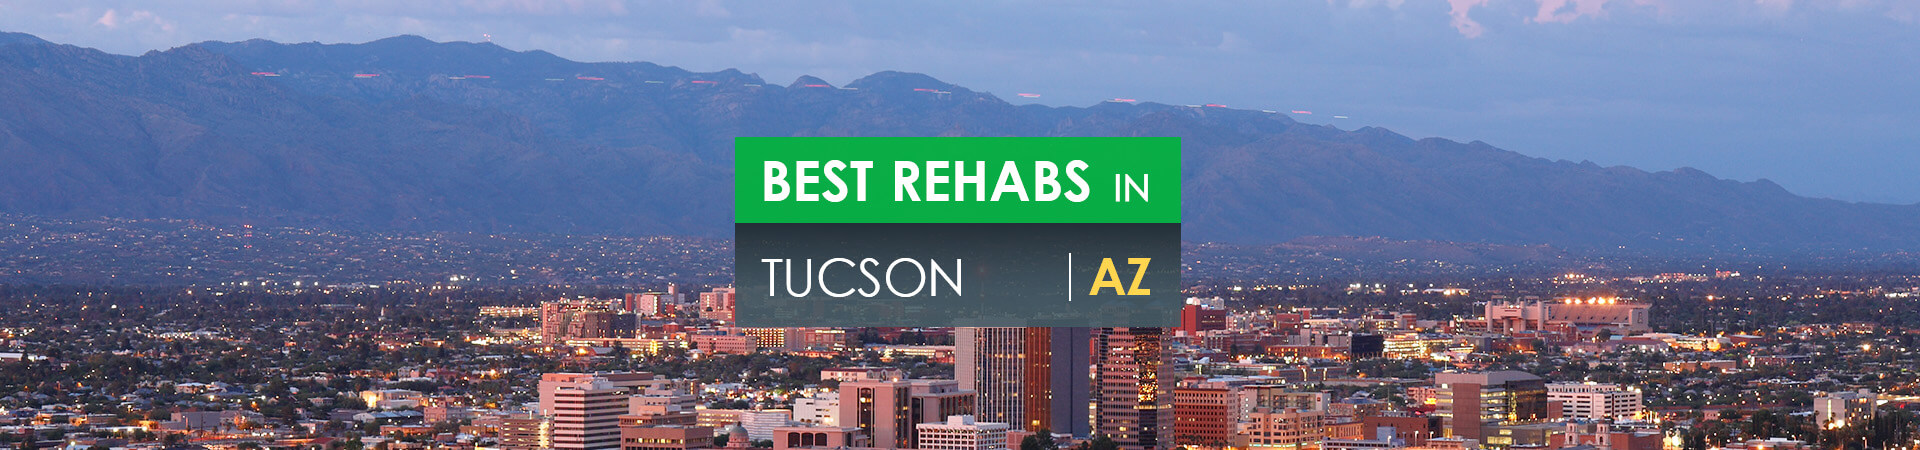 Best rehabs in Tucson, AZ